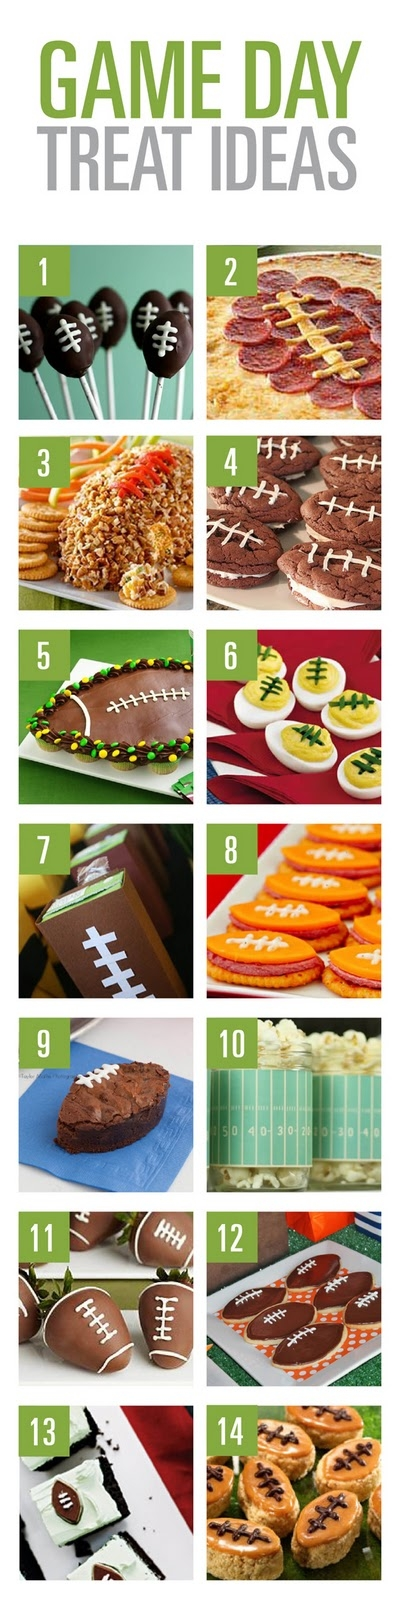 Football Game Day Treat Ideas!